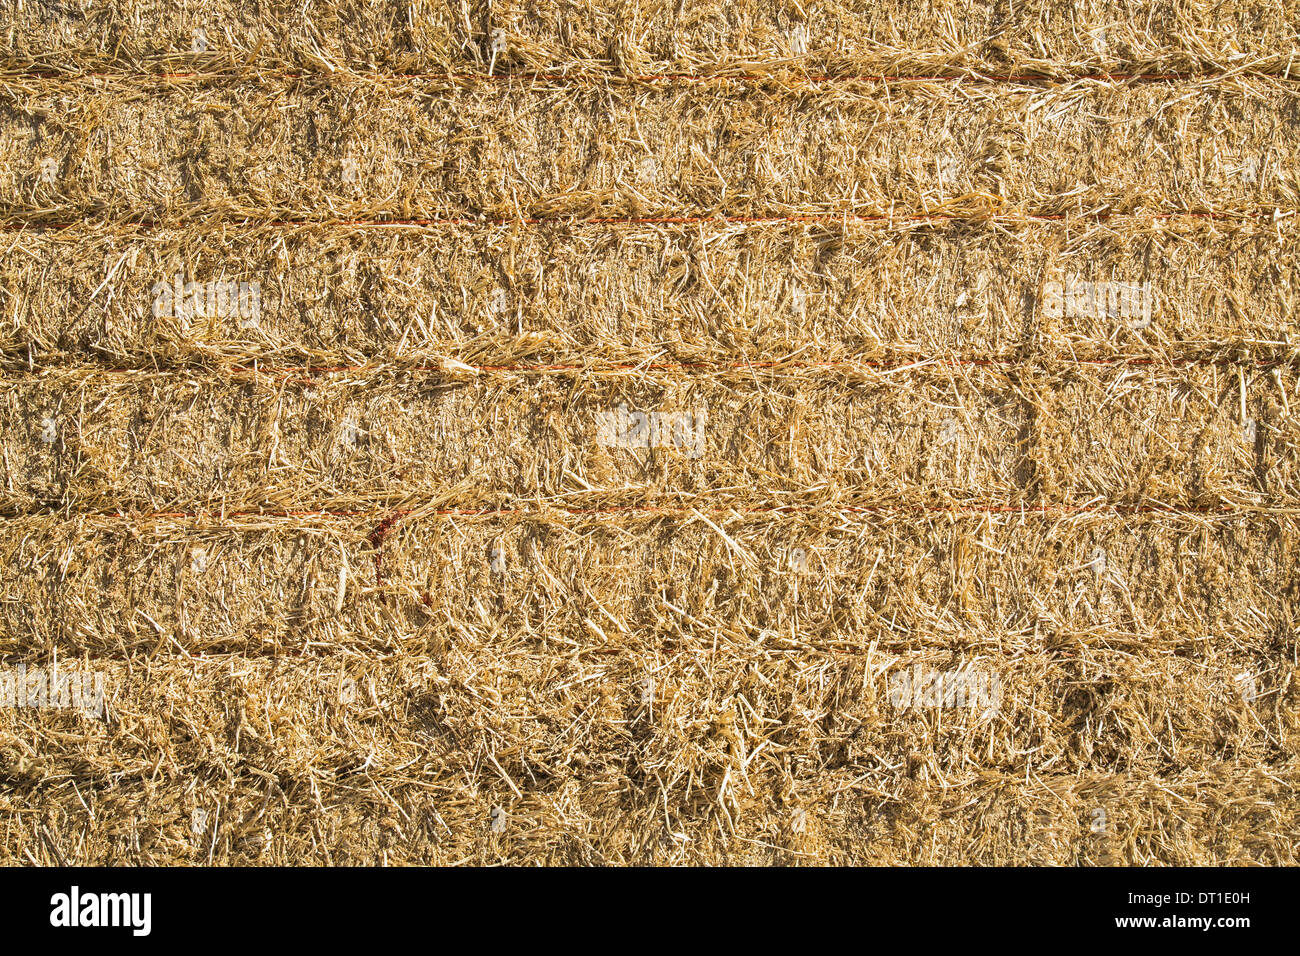 Washington State USA Hay bales stacked up Dried grass stalks baled - Stock Image